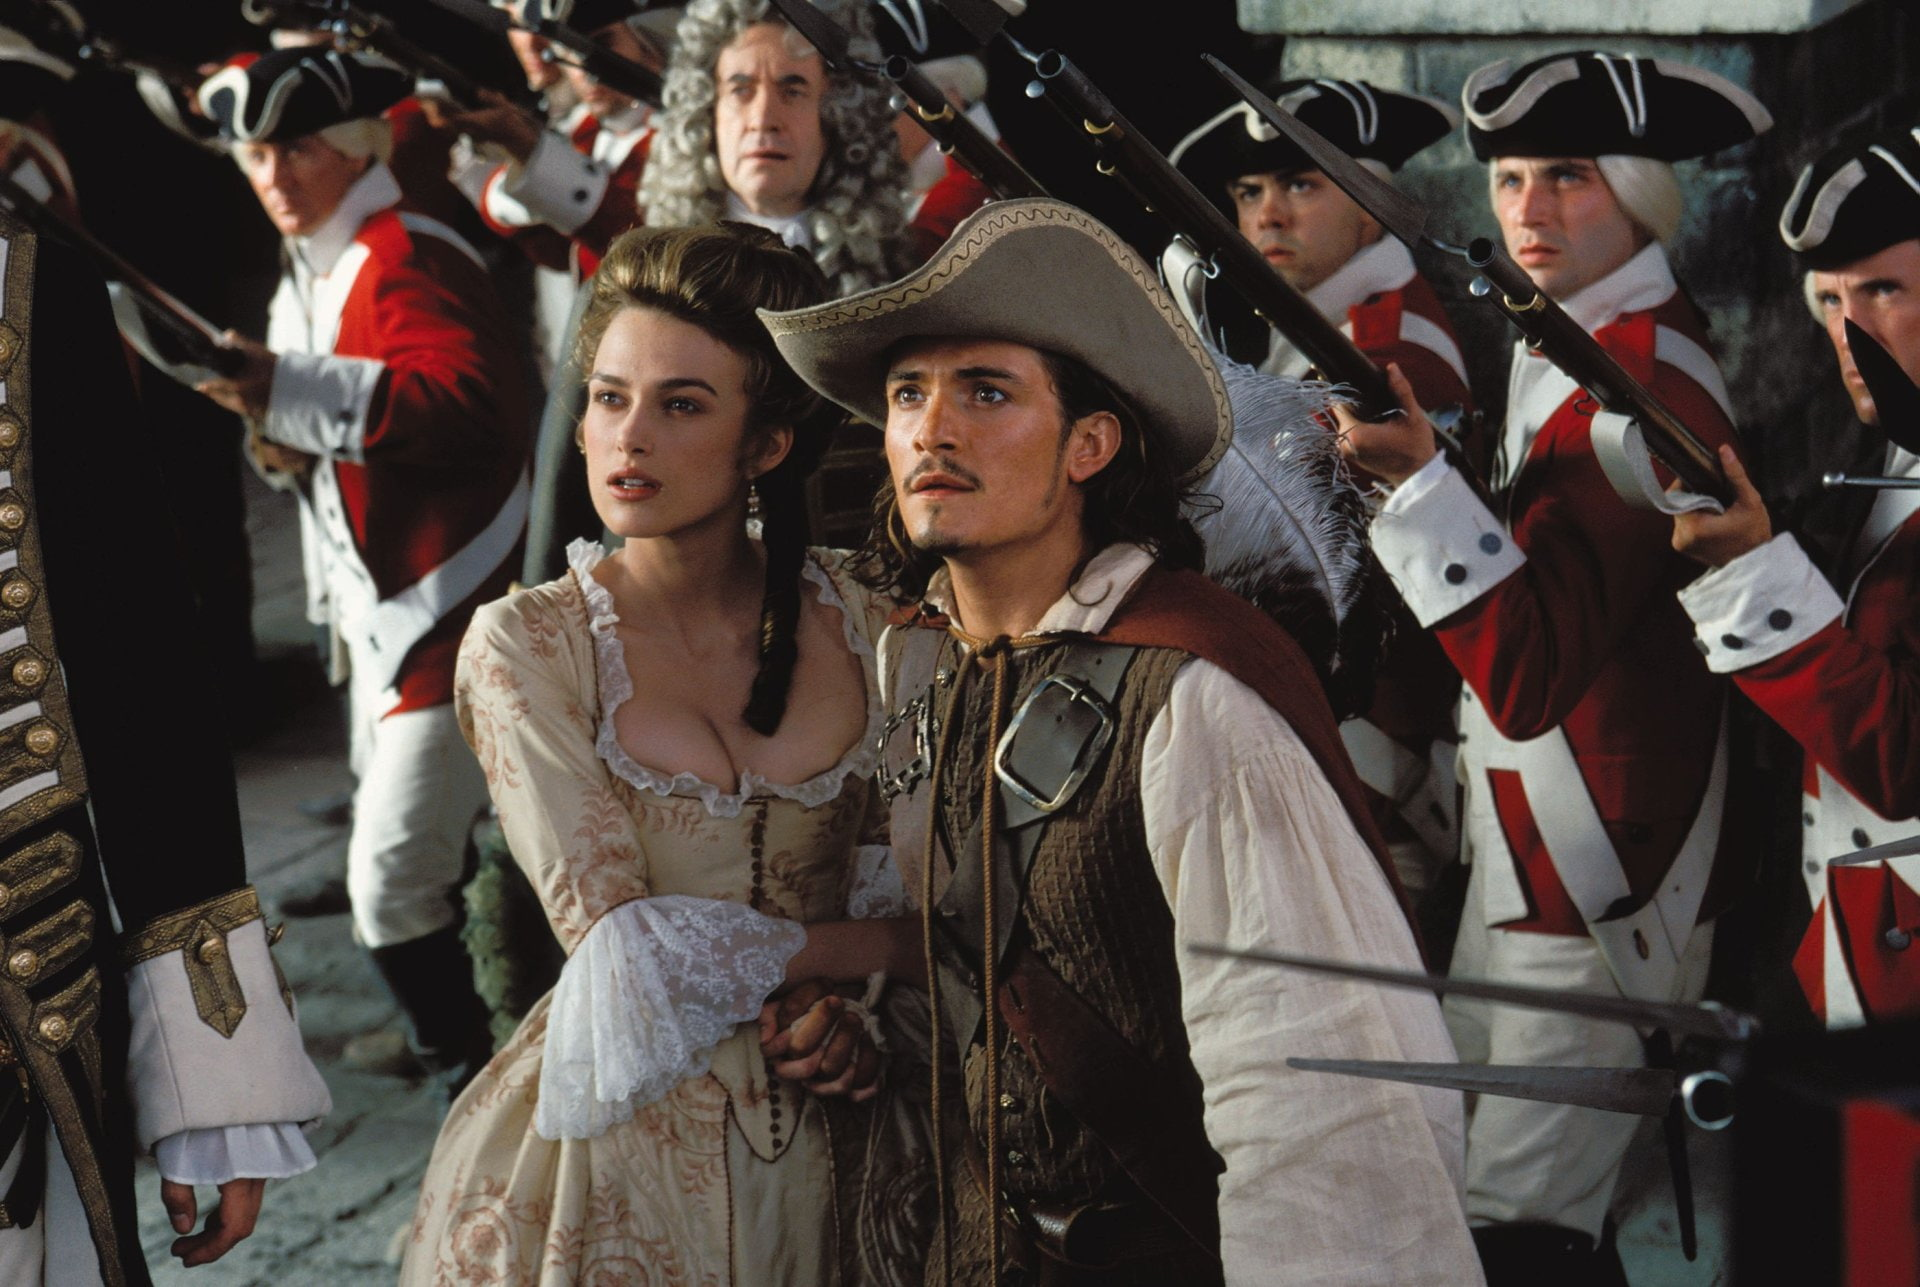 Pirates of the Caribbean on W9 Keira Knightley did not